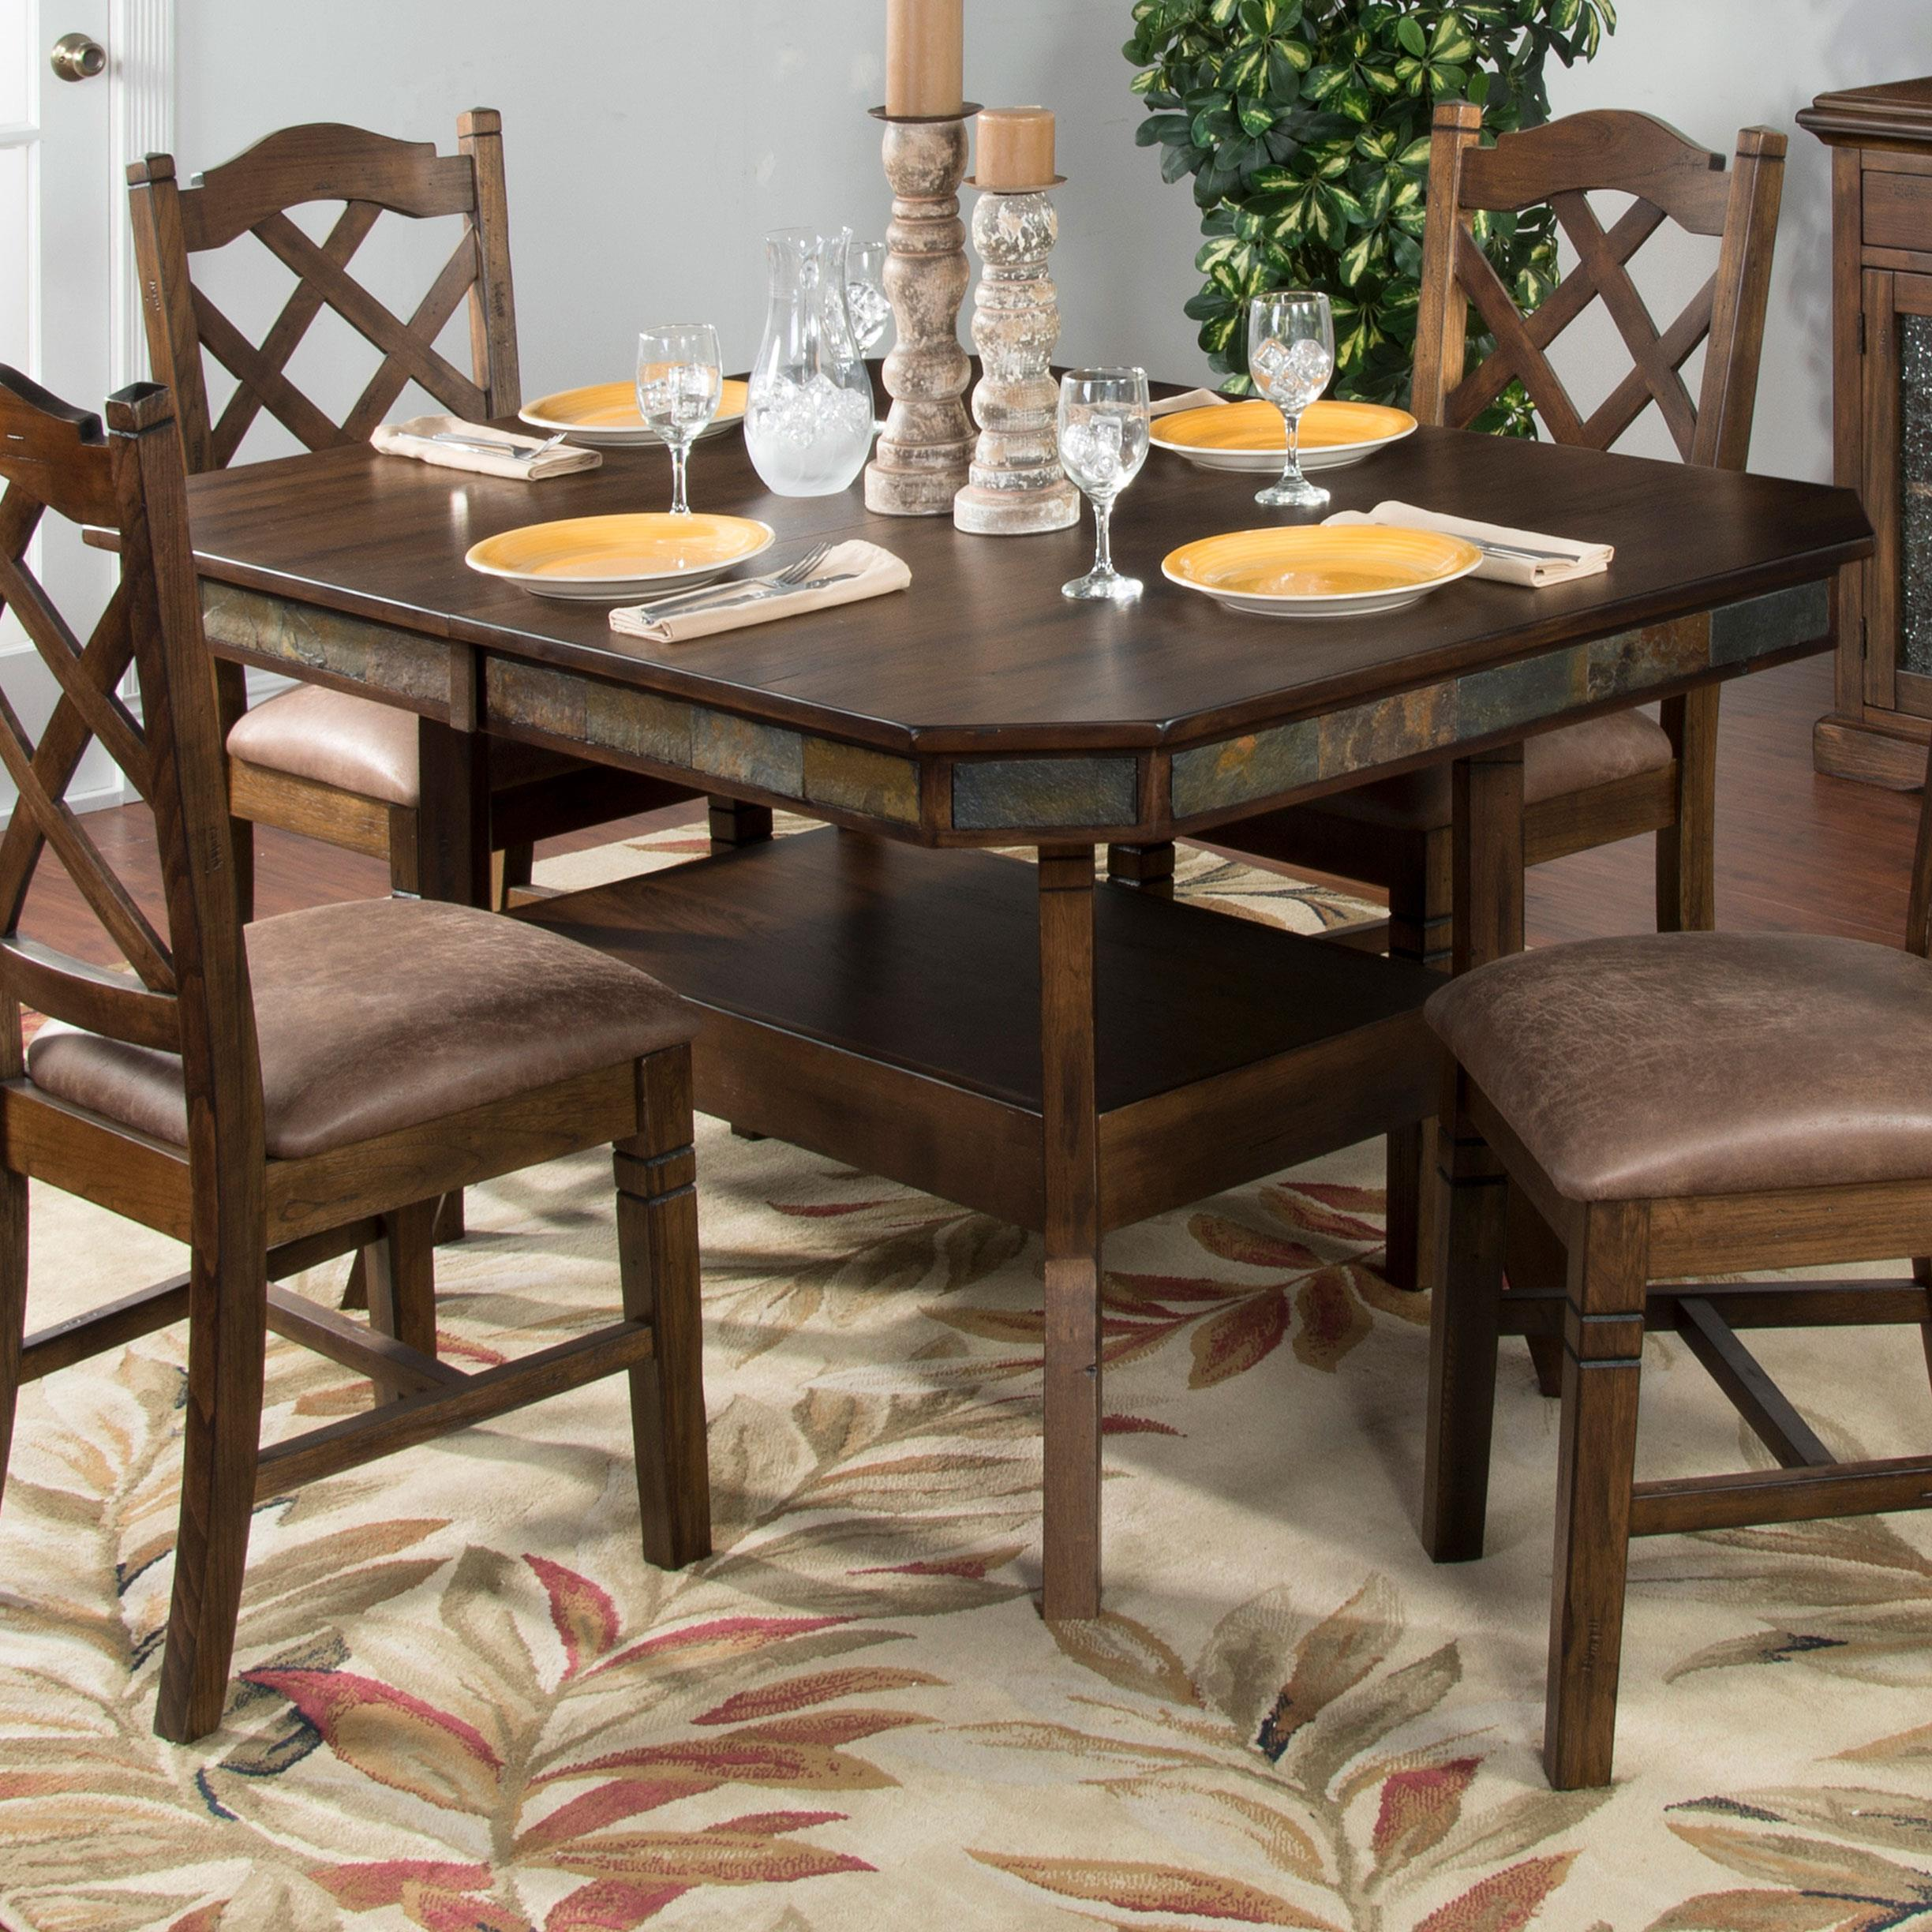 Dining Room Tables With Leaves: Adjustable Height Dining Table W/ 2 Butterfly Leaves By Sunny Designs